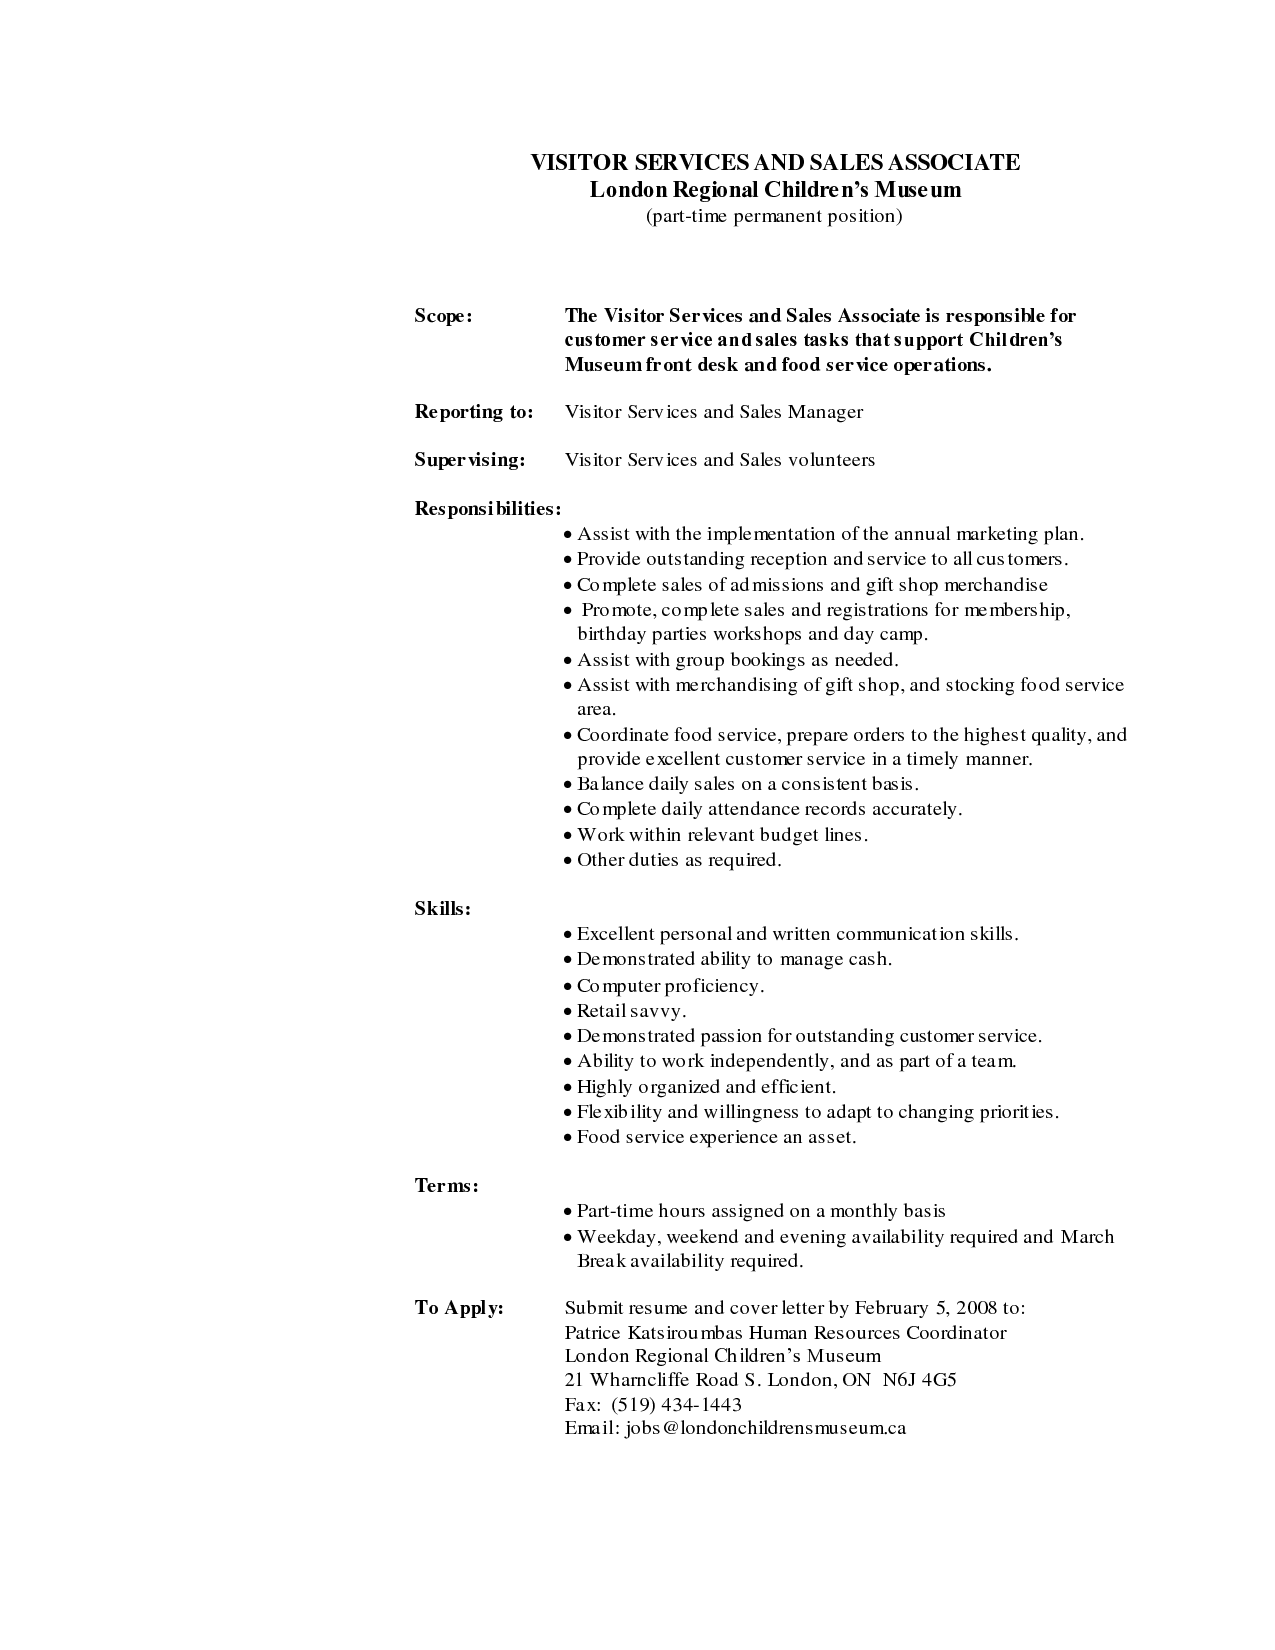 Sample resume for sales associate skills